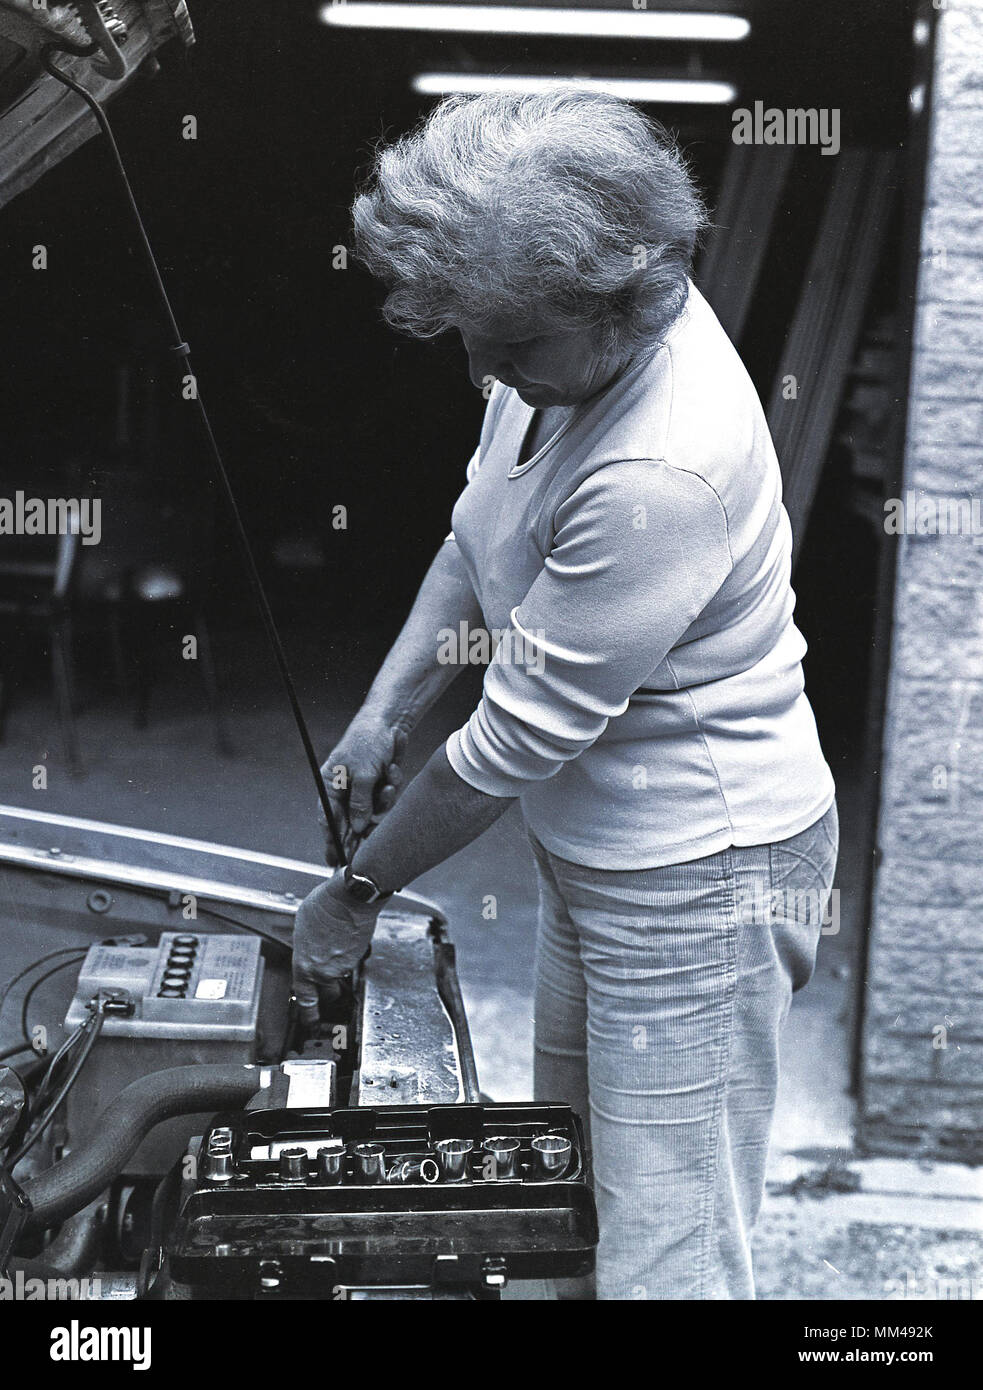 1970s, historical picture showing a mature woman doing an adult educational class of car or motor vehicle maintenance. The bonnet of car is up and she is using a spanner from a toolbox to undo nuts to remove the battery. - Stock Image